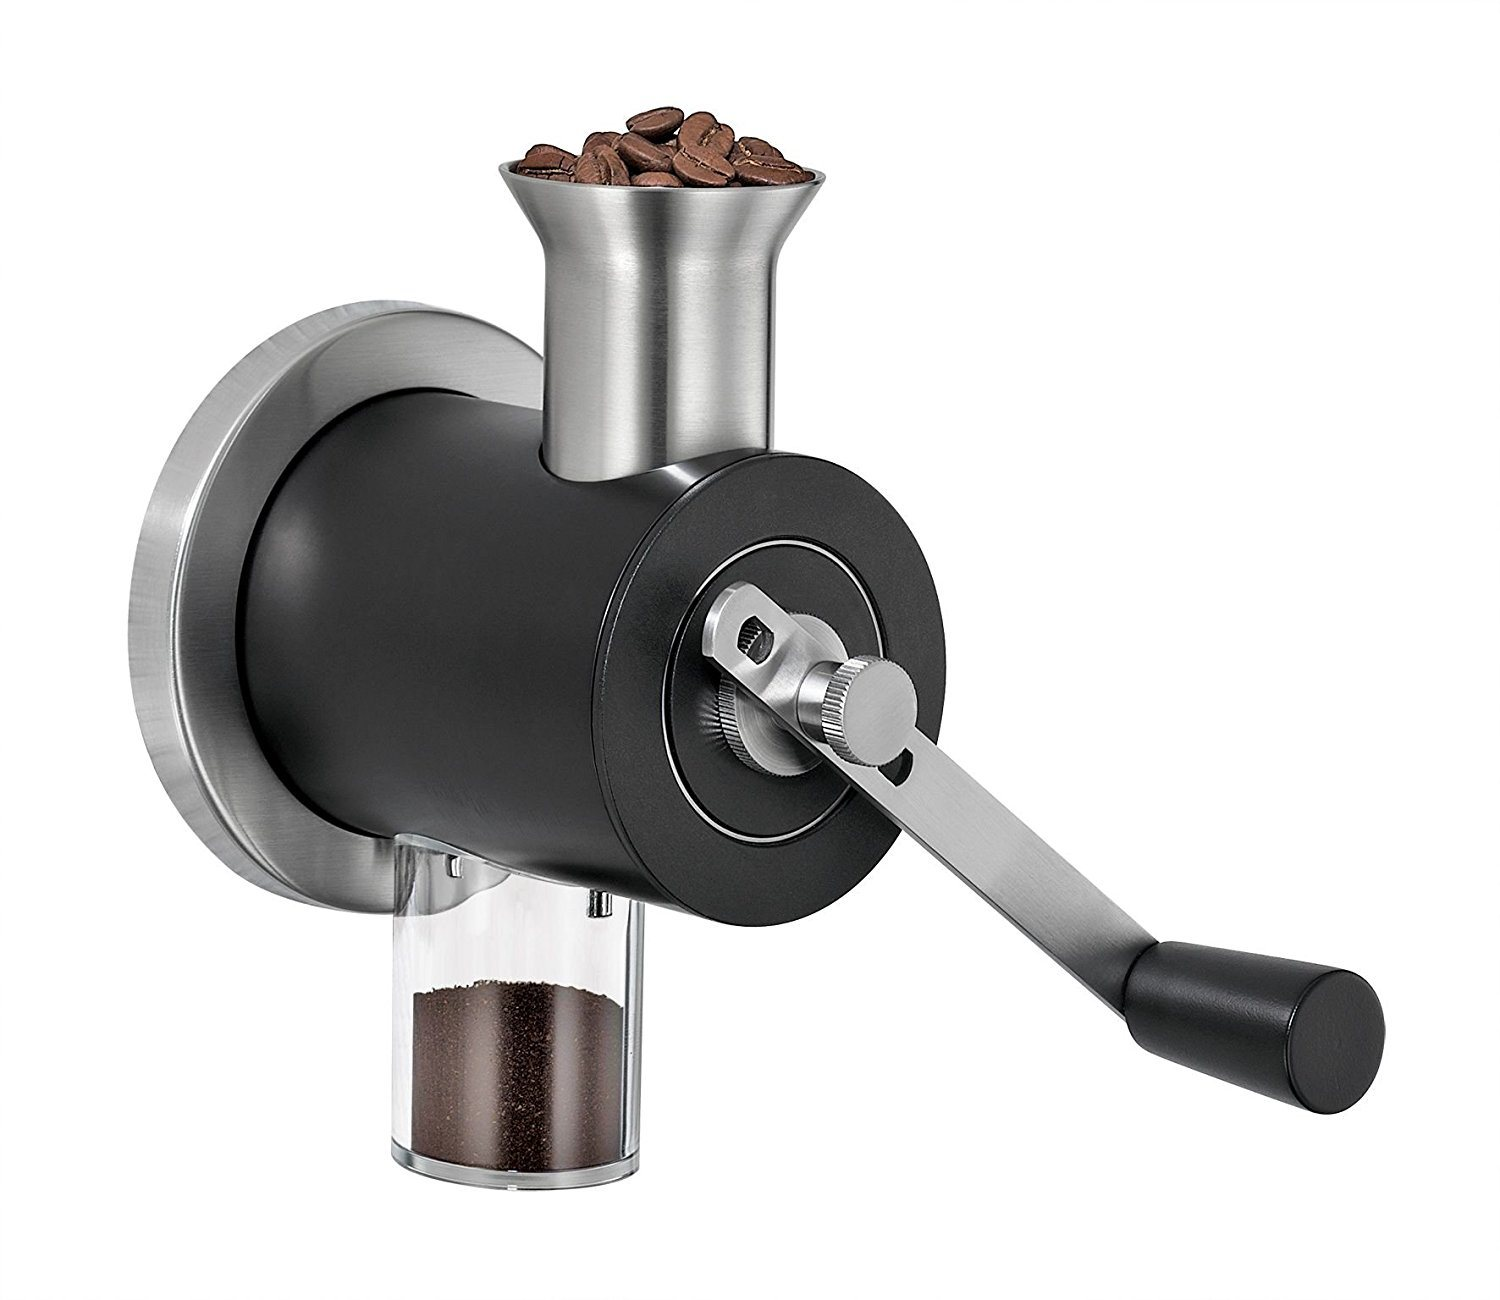 Wall Mounted Grinder ~ Best wall mounted coffee grinder reviews uk the